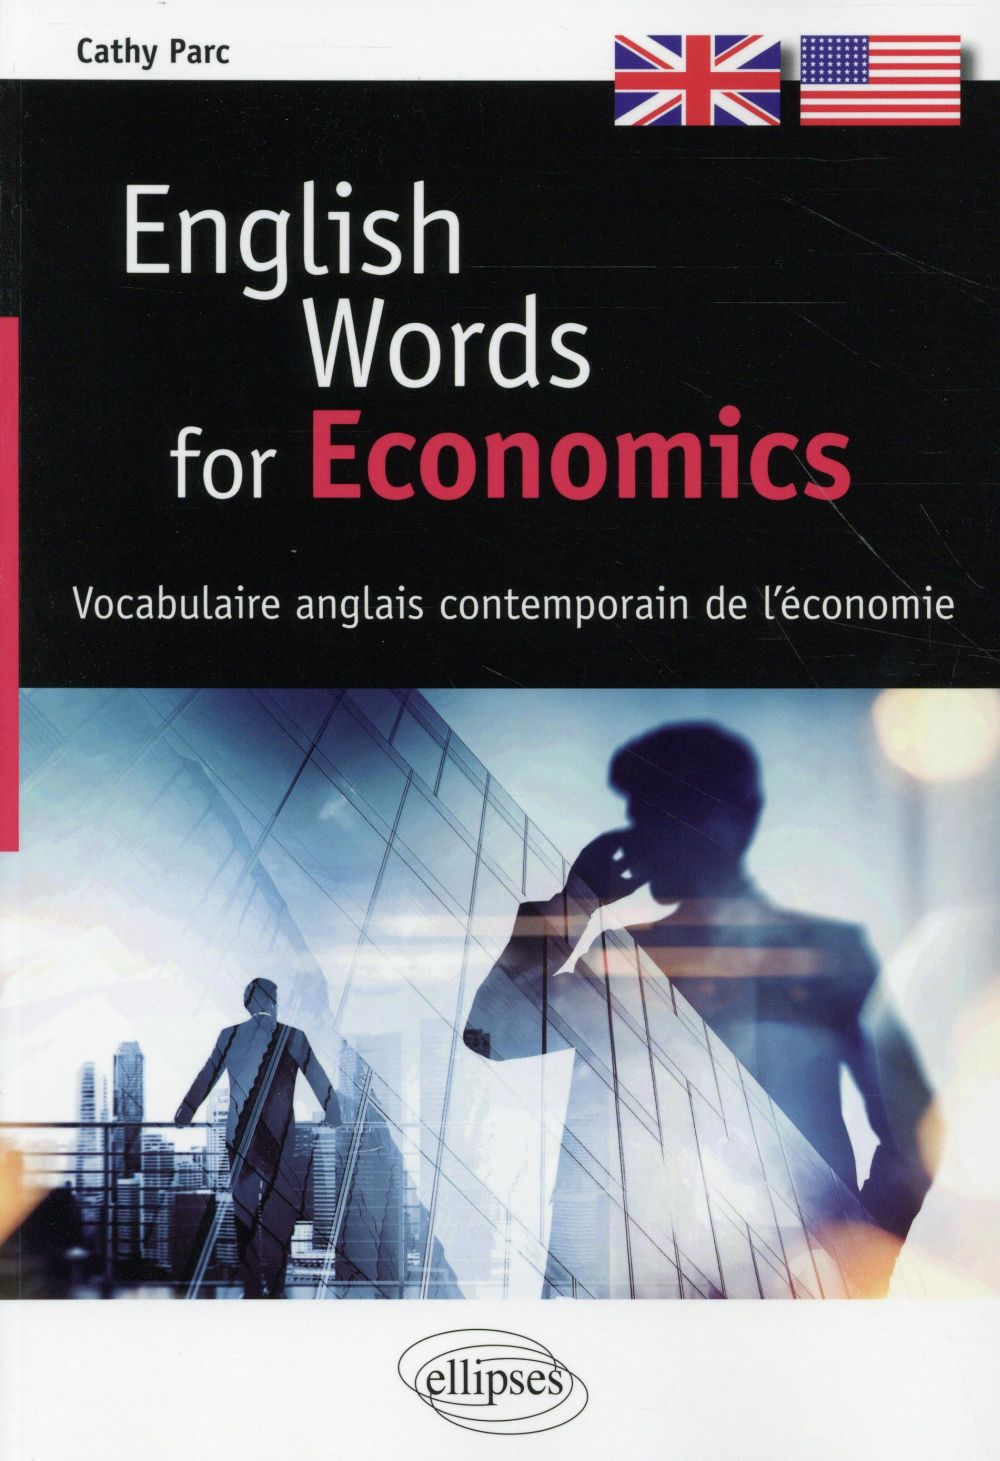 English words for economics - vocabulaire anglais contemporain de l'economie